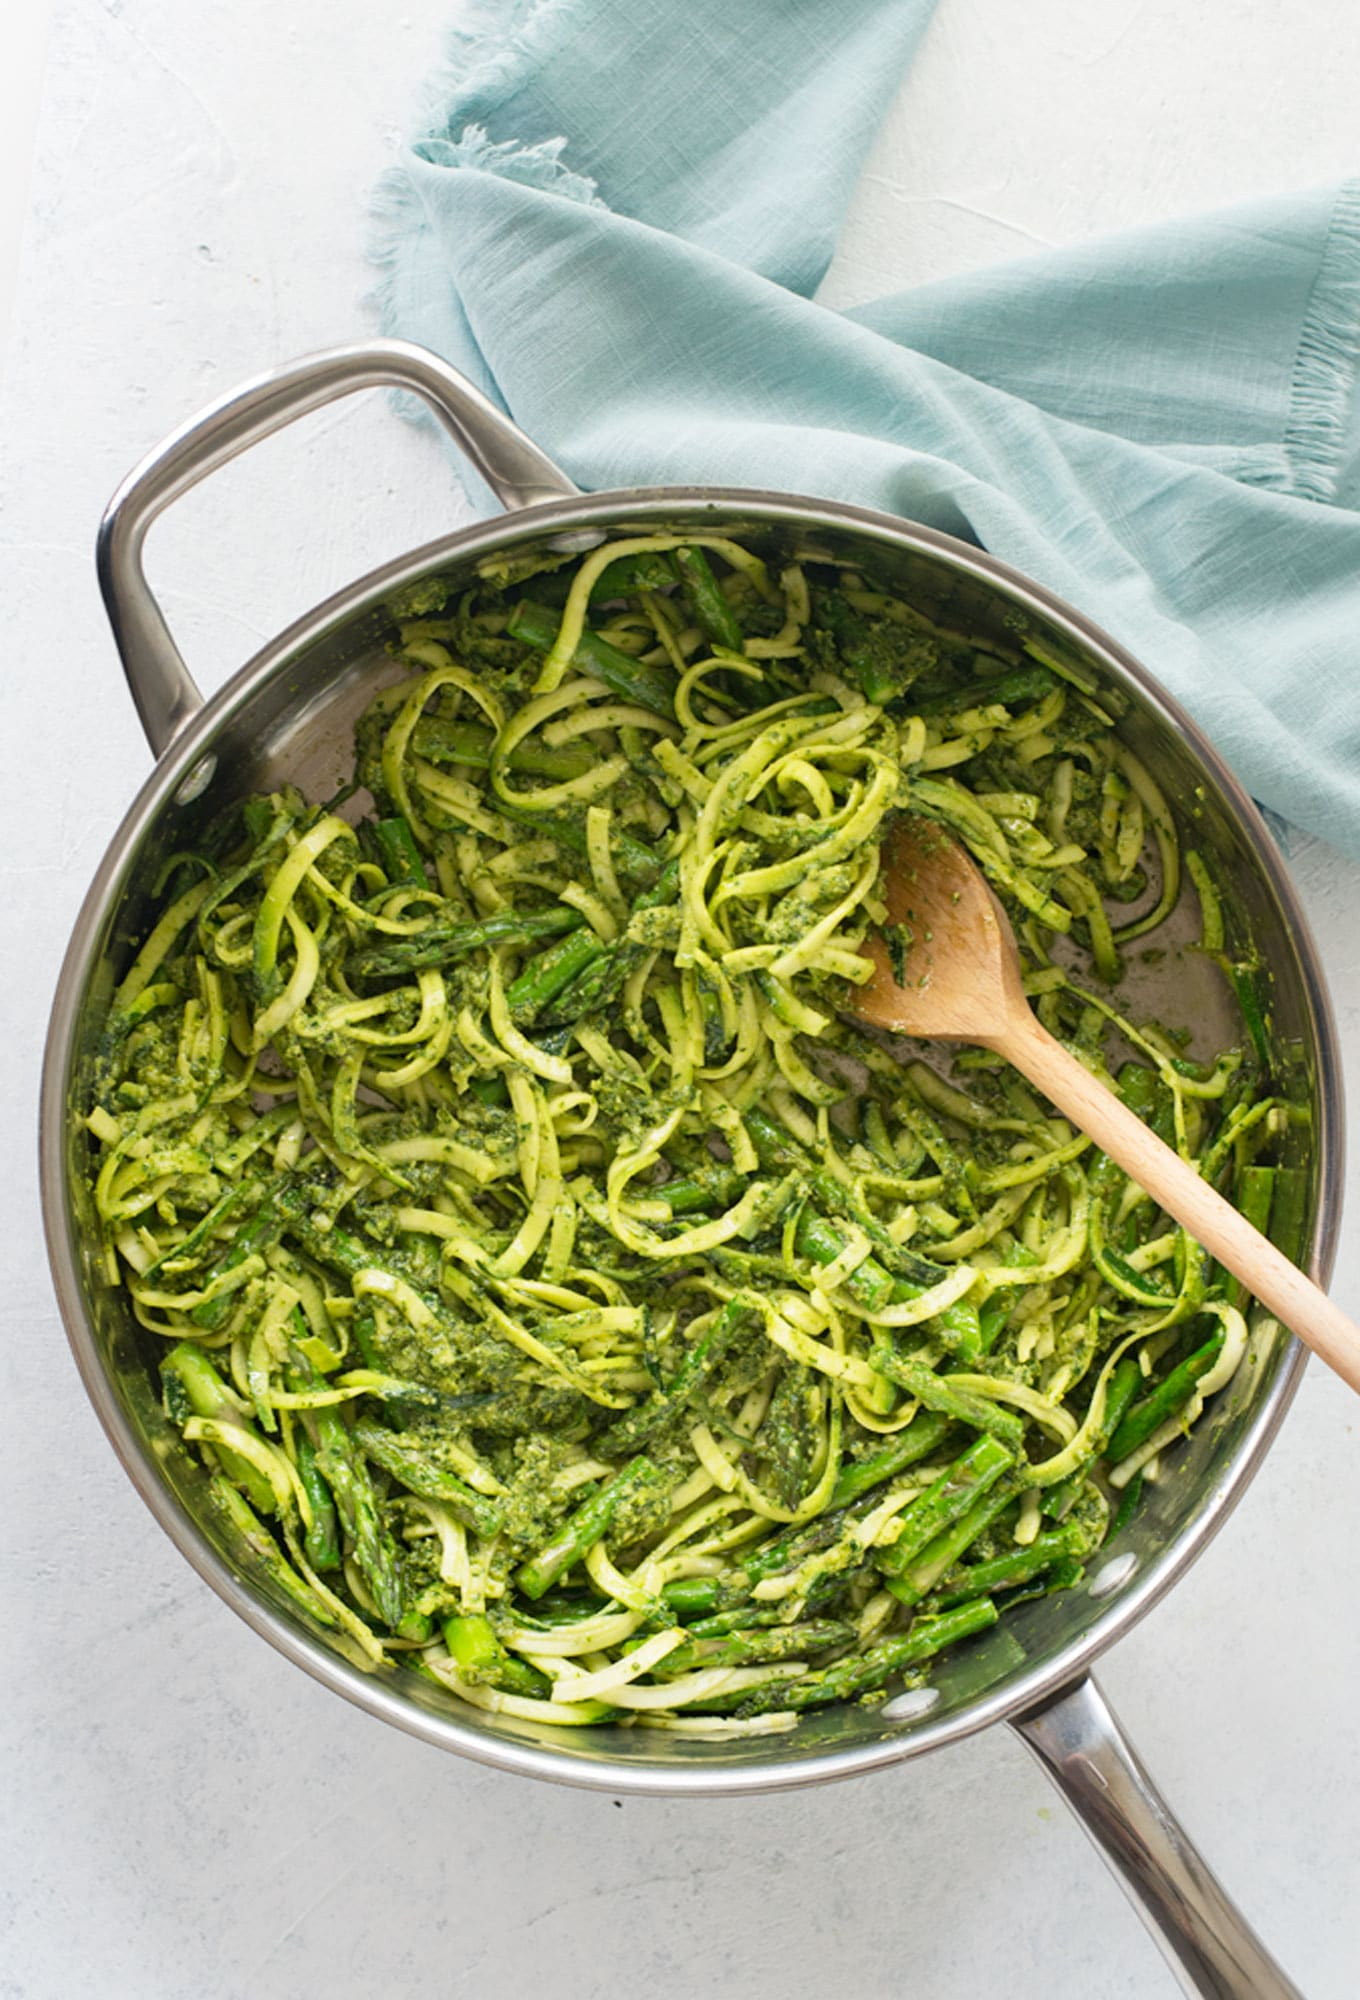 vegan one pot dinner. zoodles with lemon pesto and asparagus in pan on white background with blue napkin